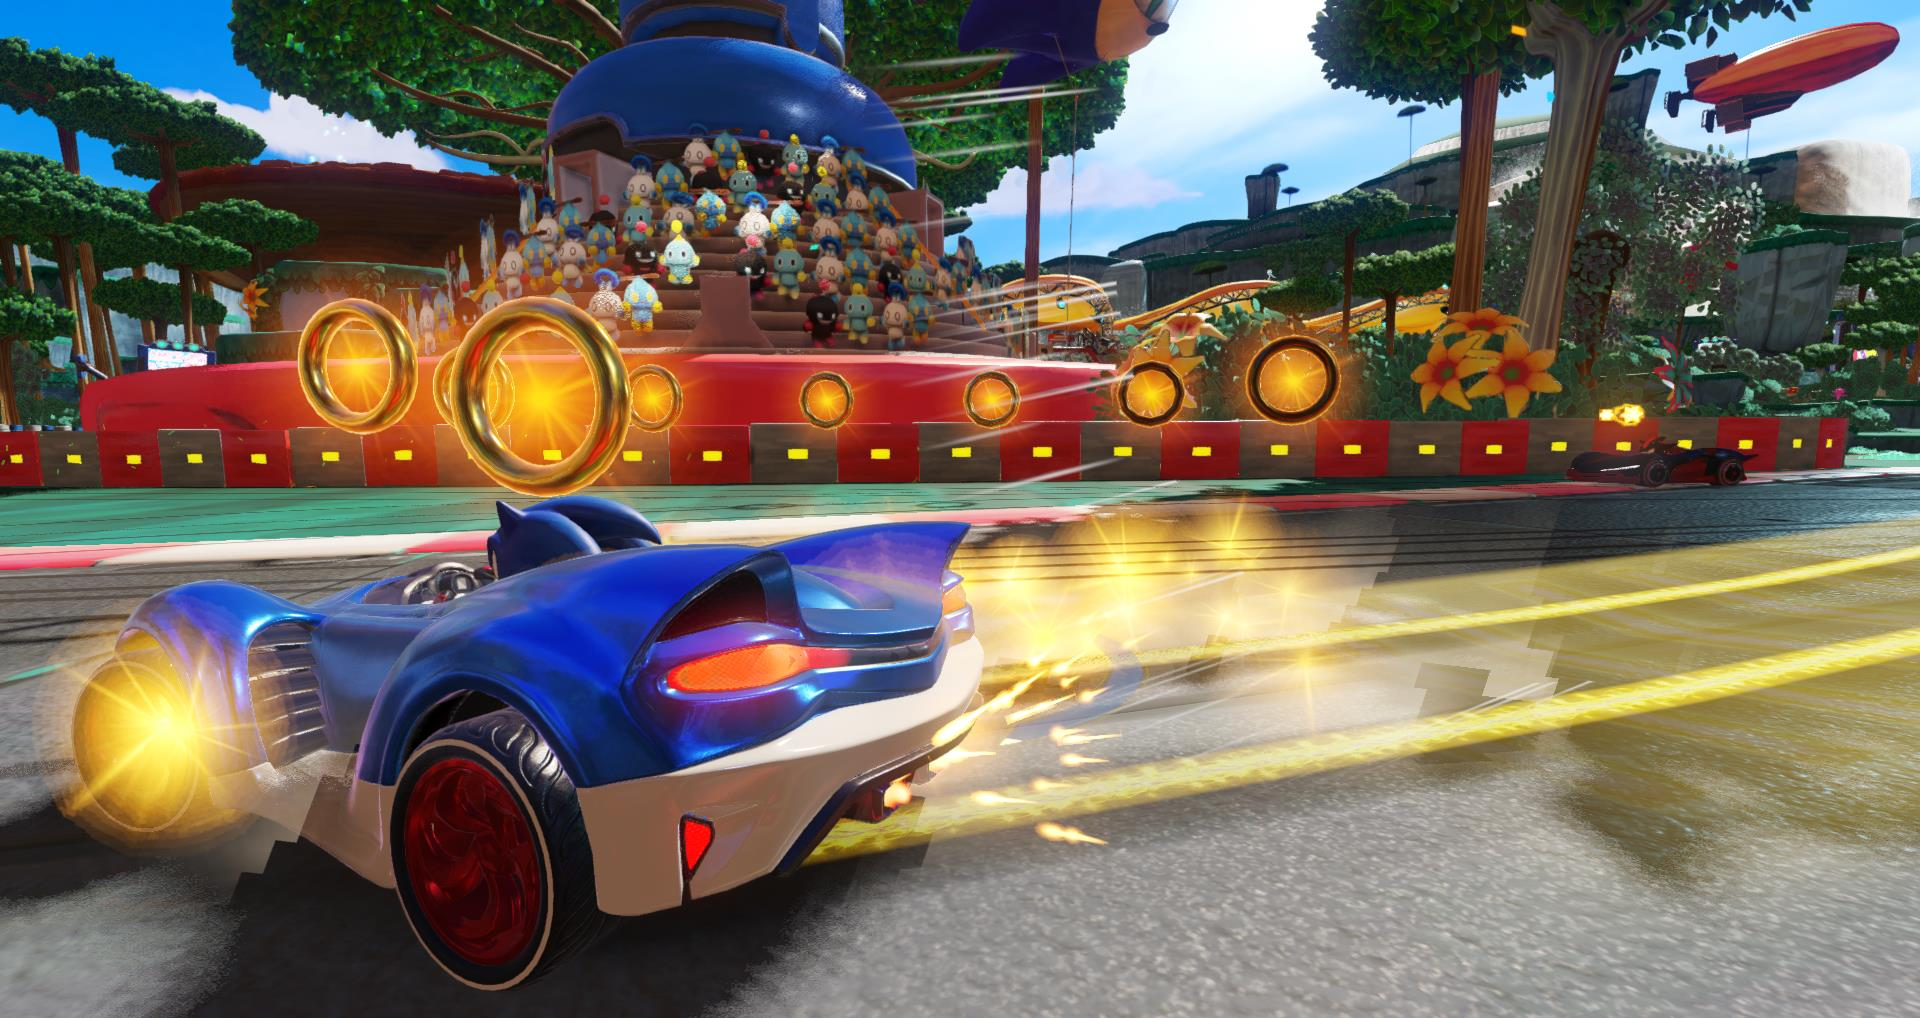 'Team Sonic Racing' Coming to Nintendo Switch